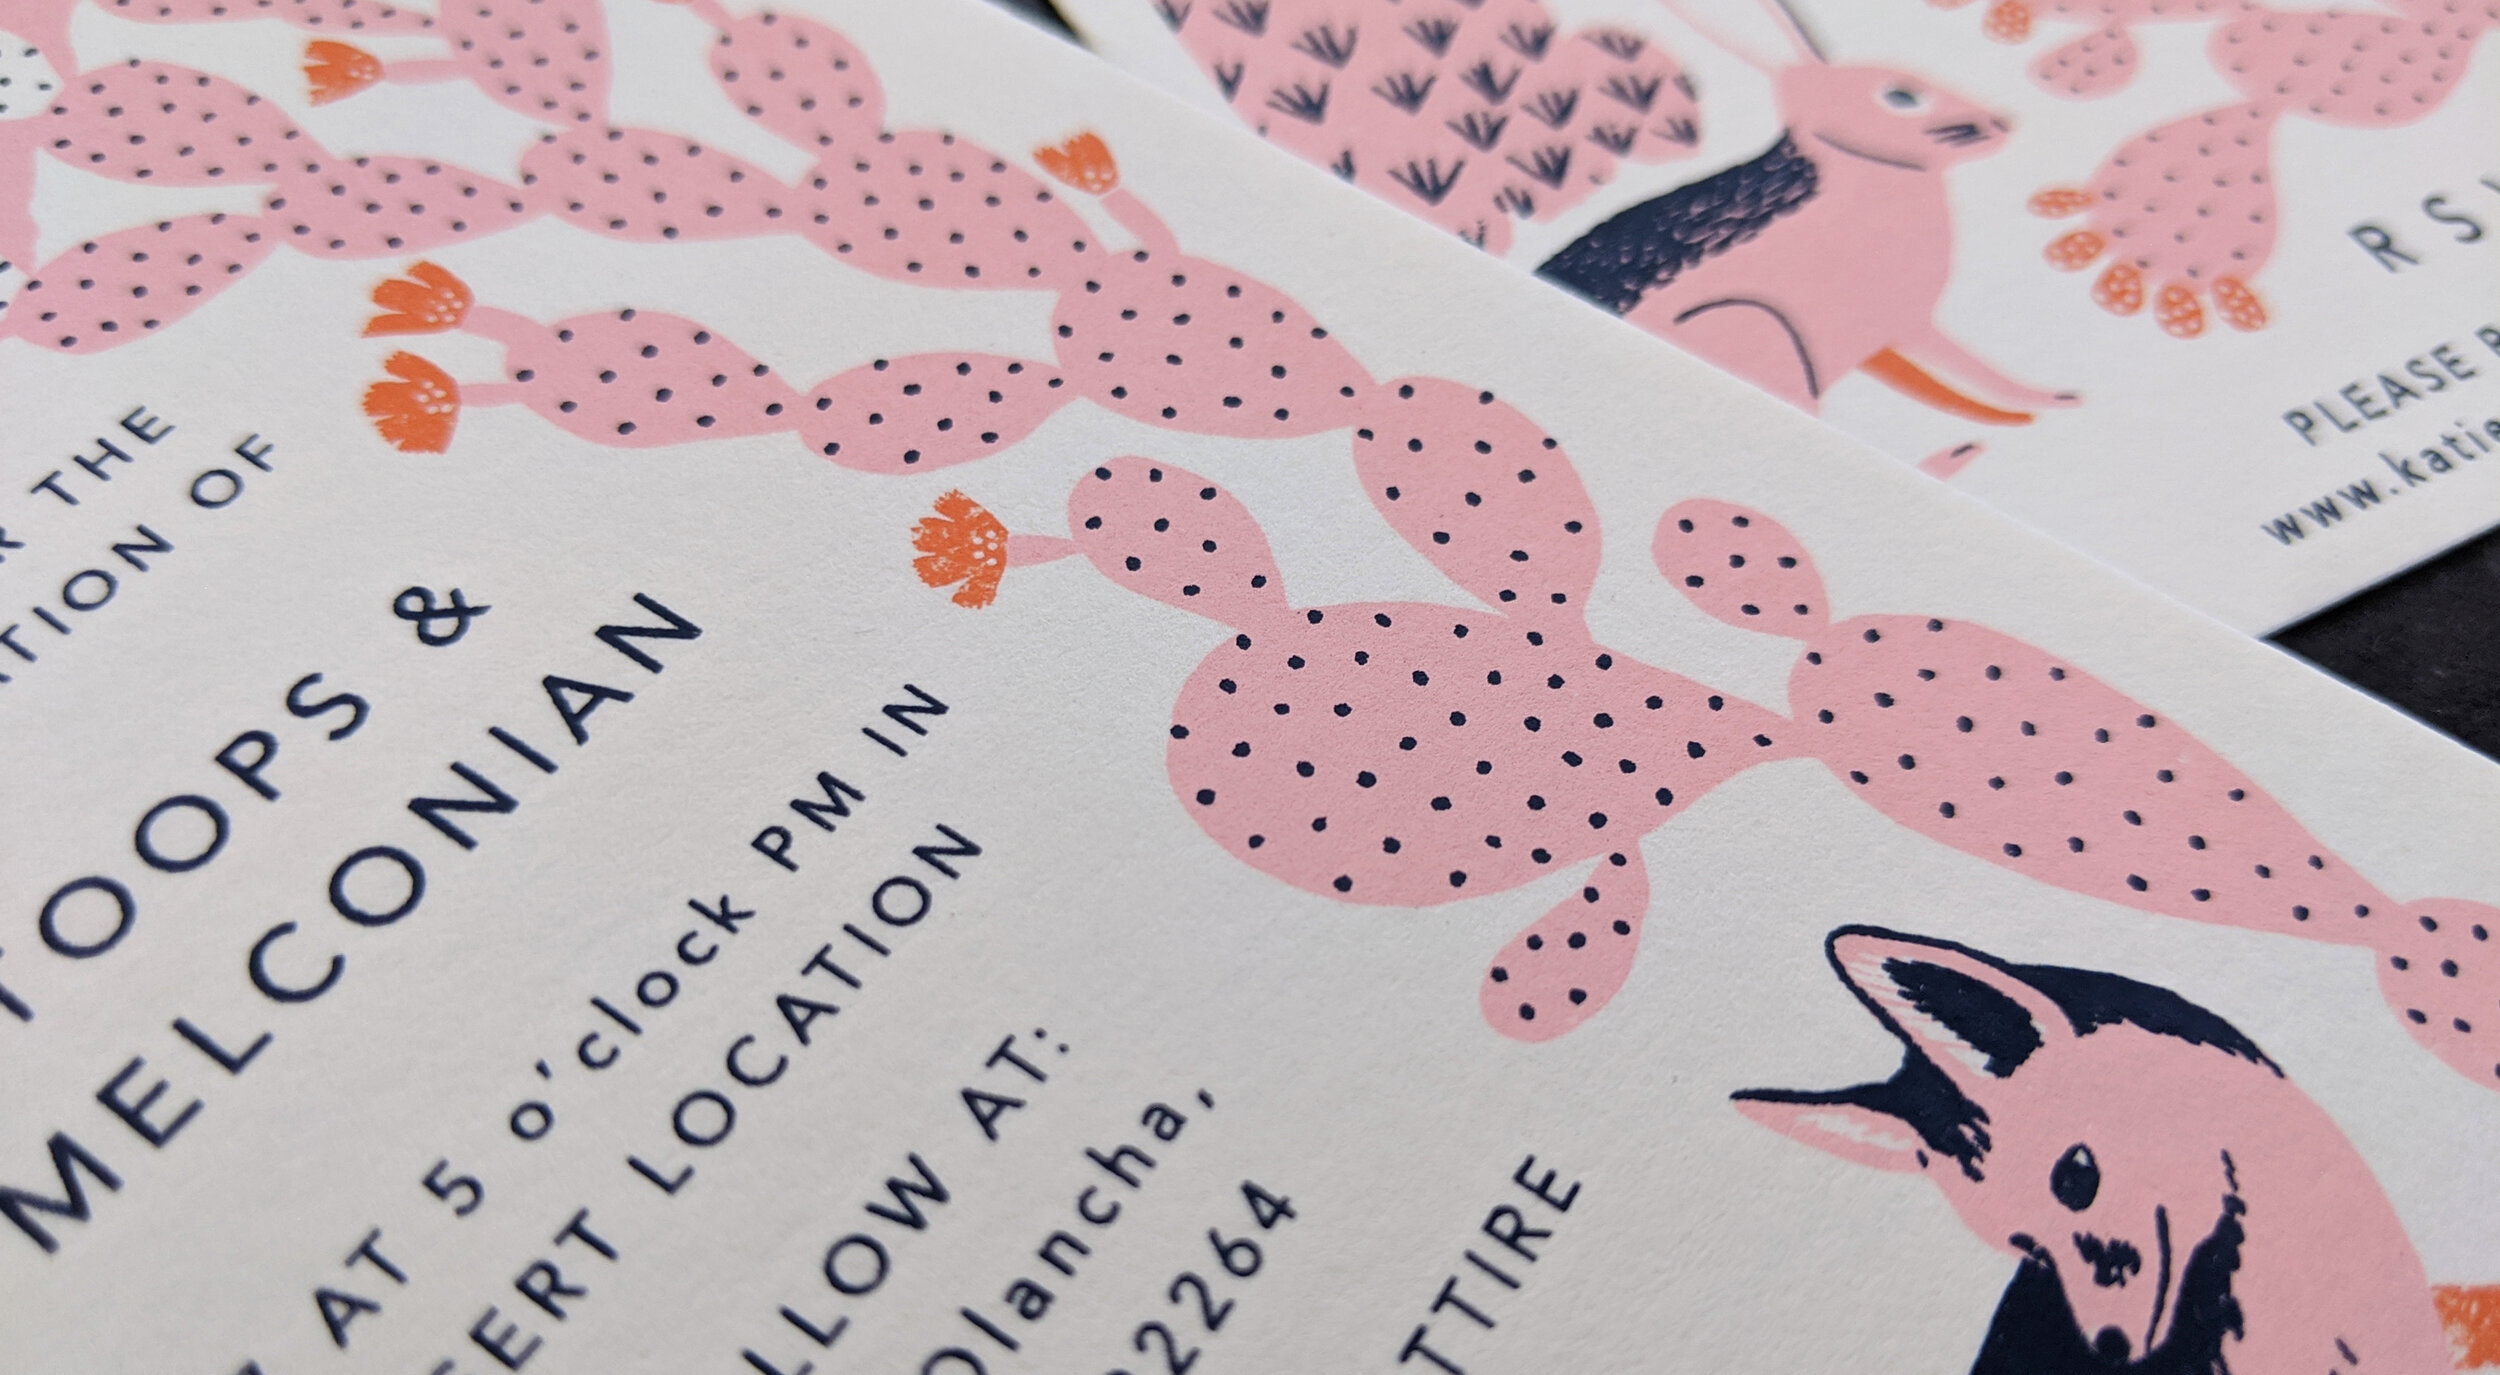 3 color screen printed wedding invitations on 110# pearl white lettra (100% cotton)